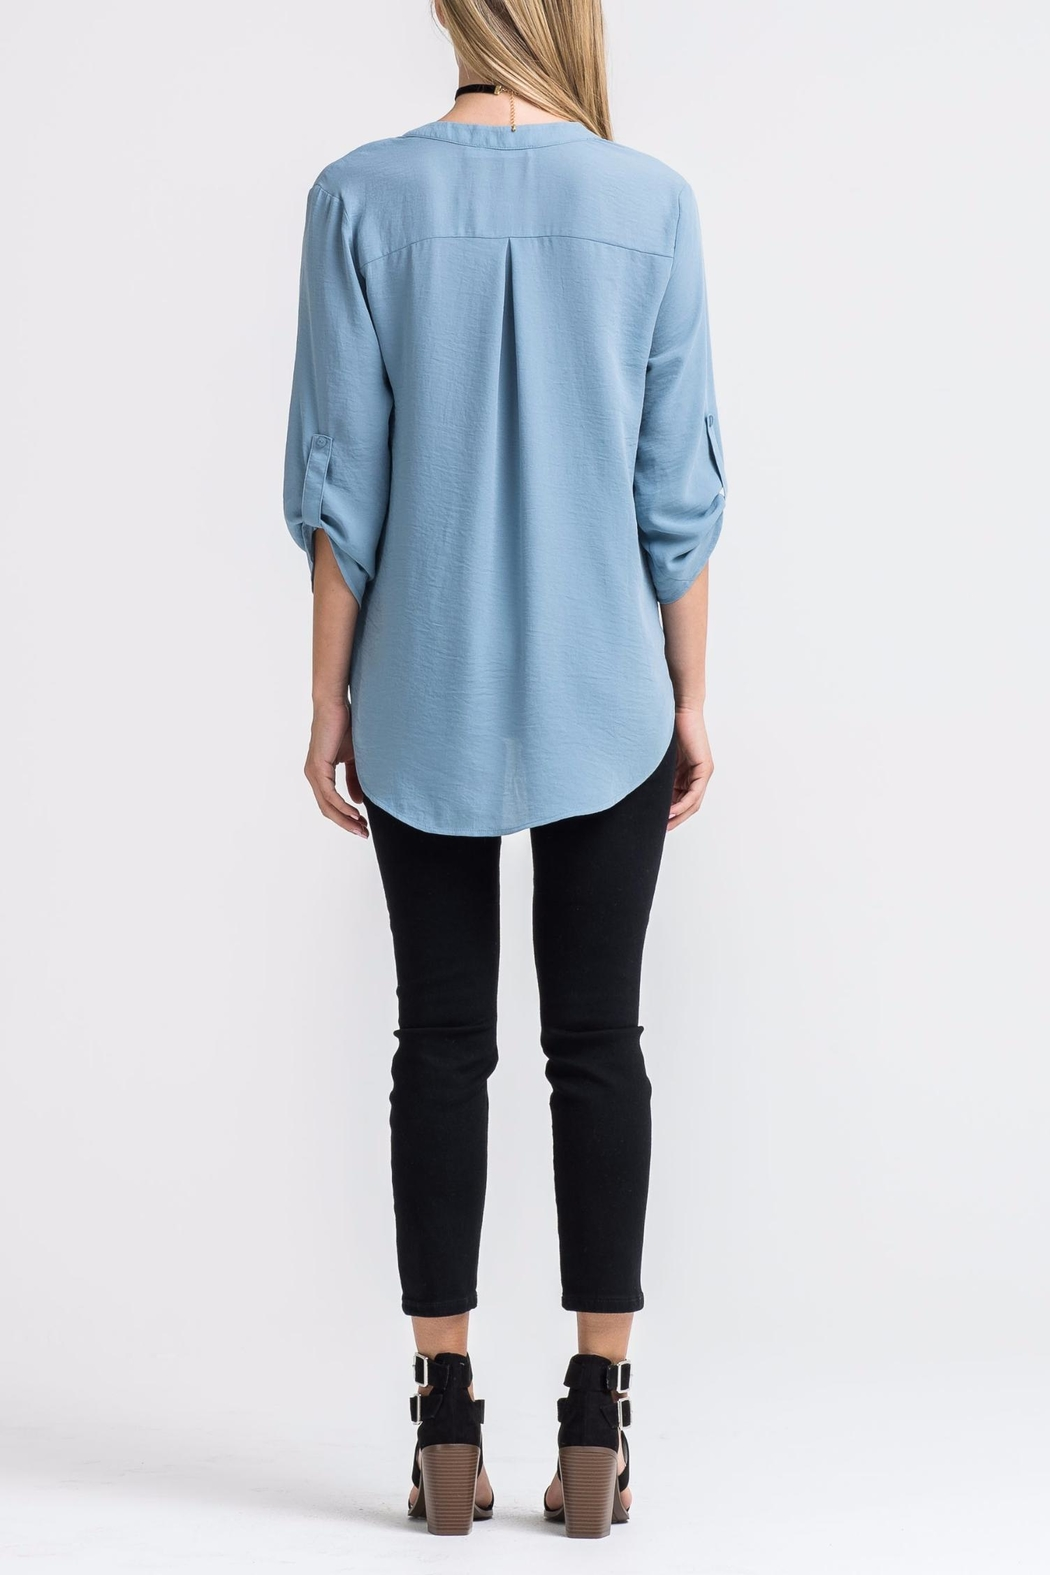 Lush Blue Twist-Front Shirt - Front Full Image